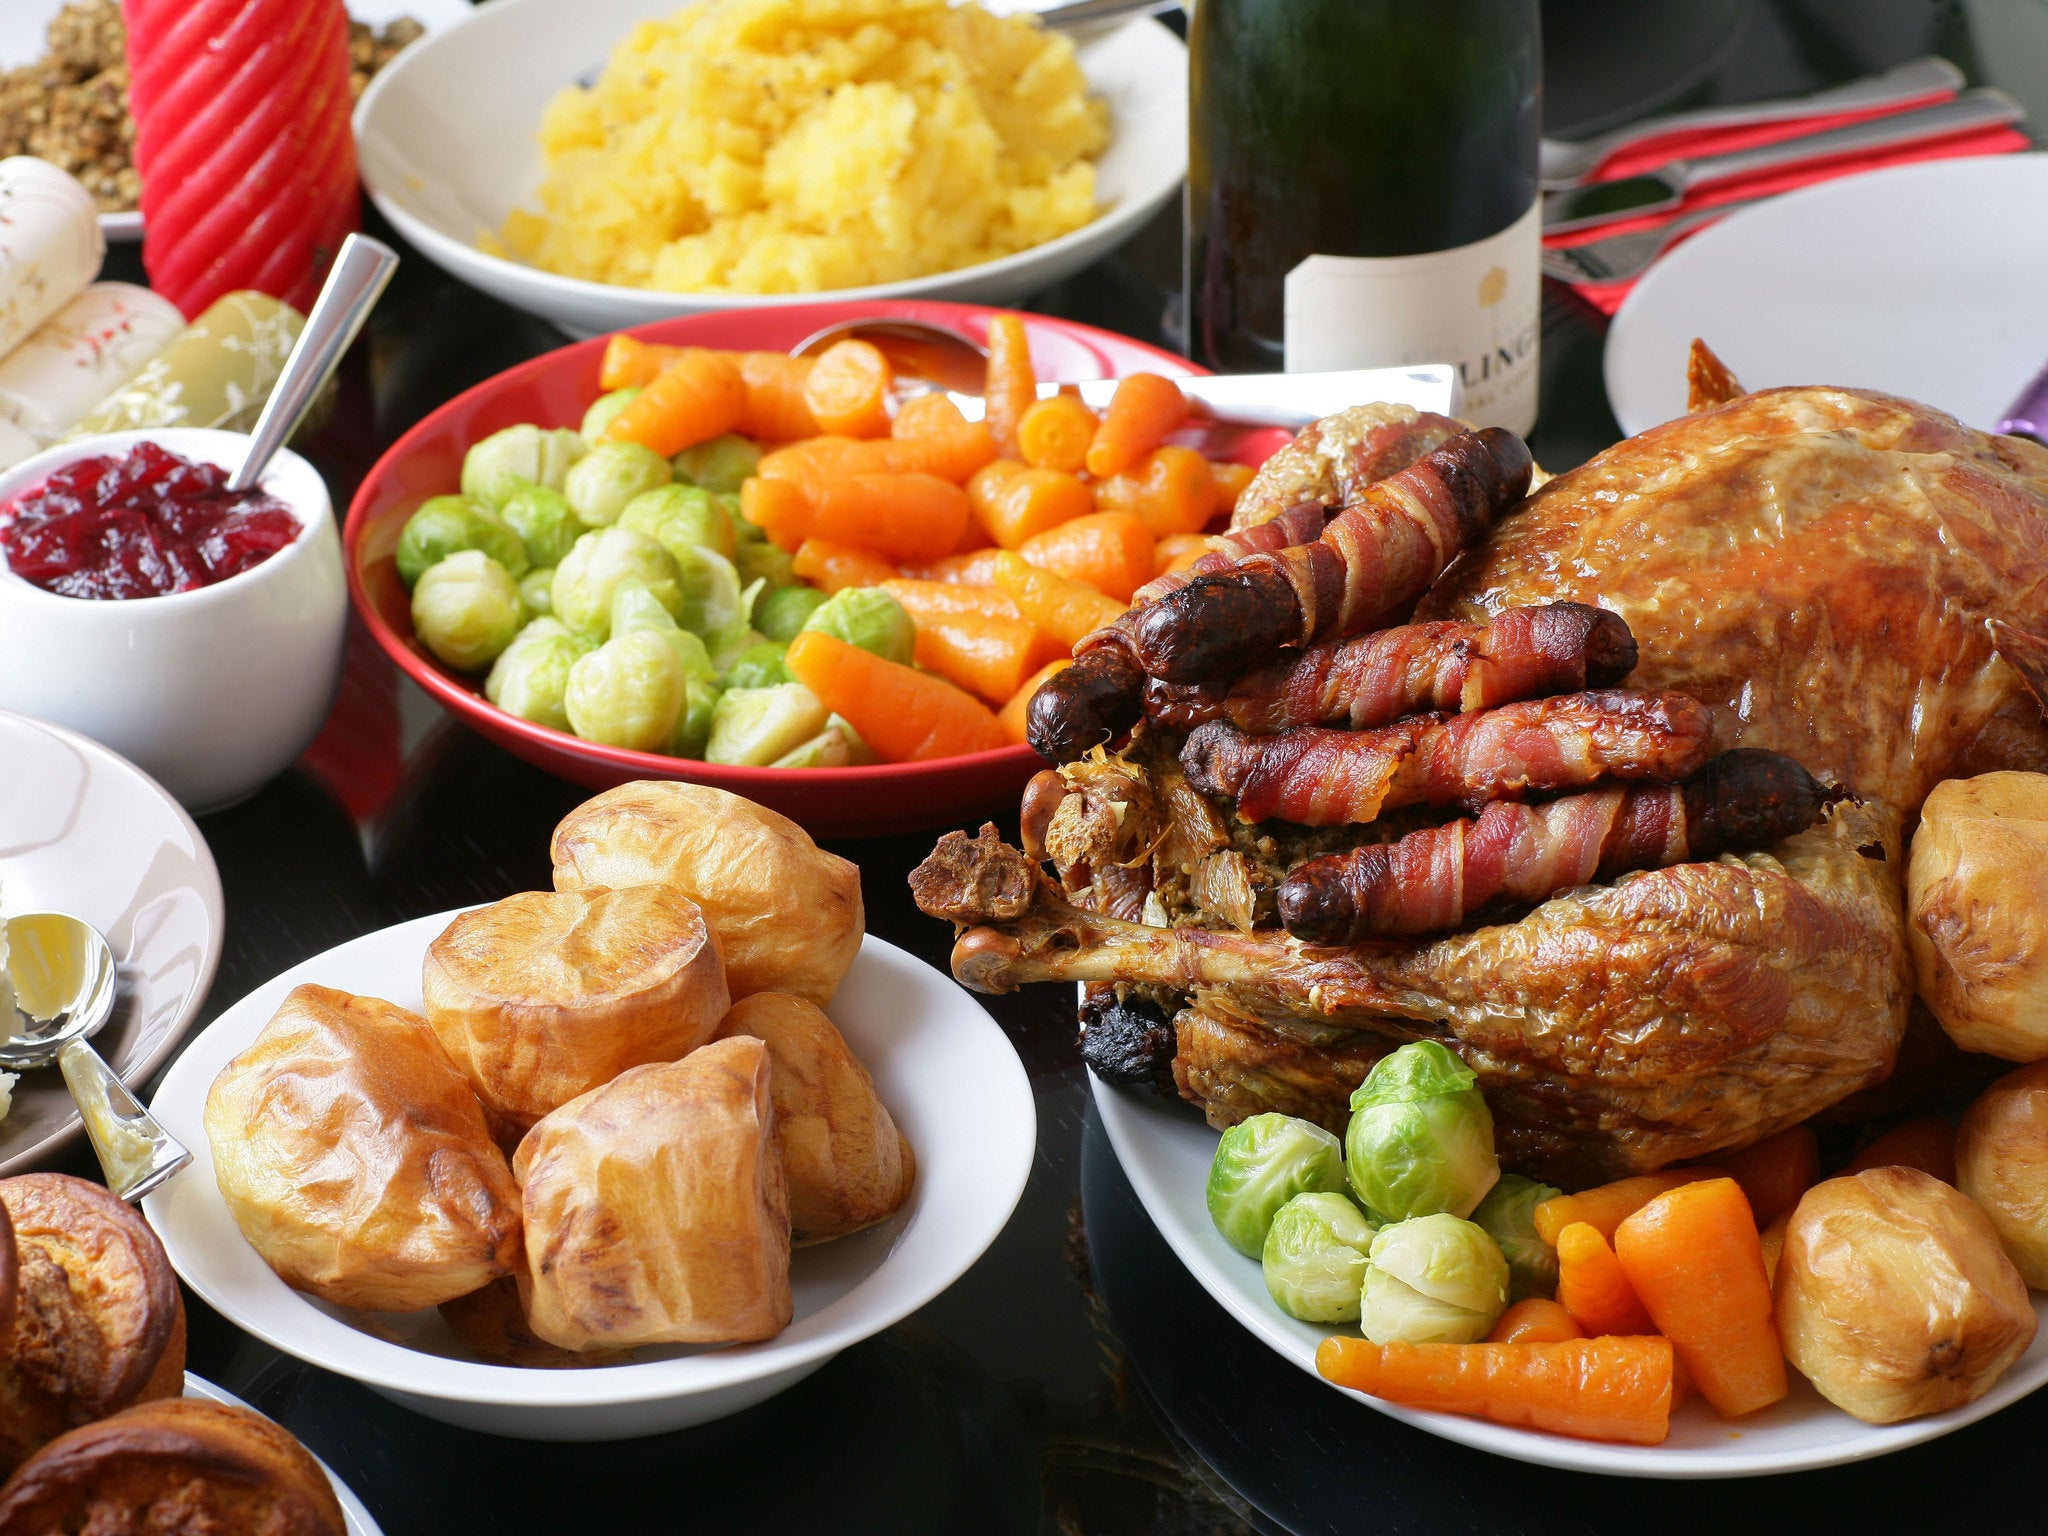 Uk 39 s favourite food to eat on christmas day revealed the for What do you eat on thanksgiving list